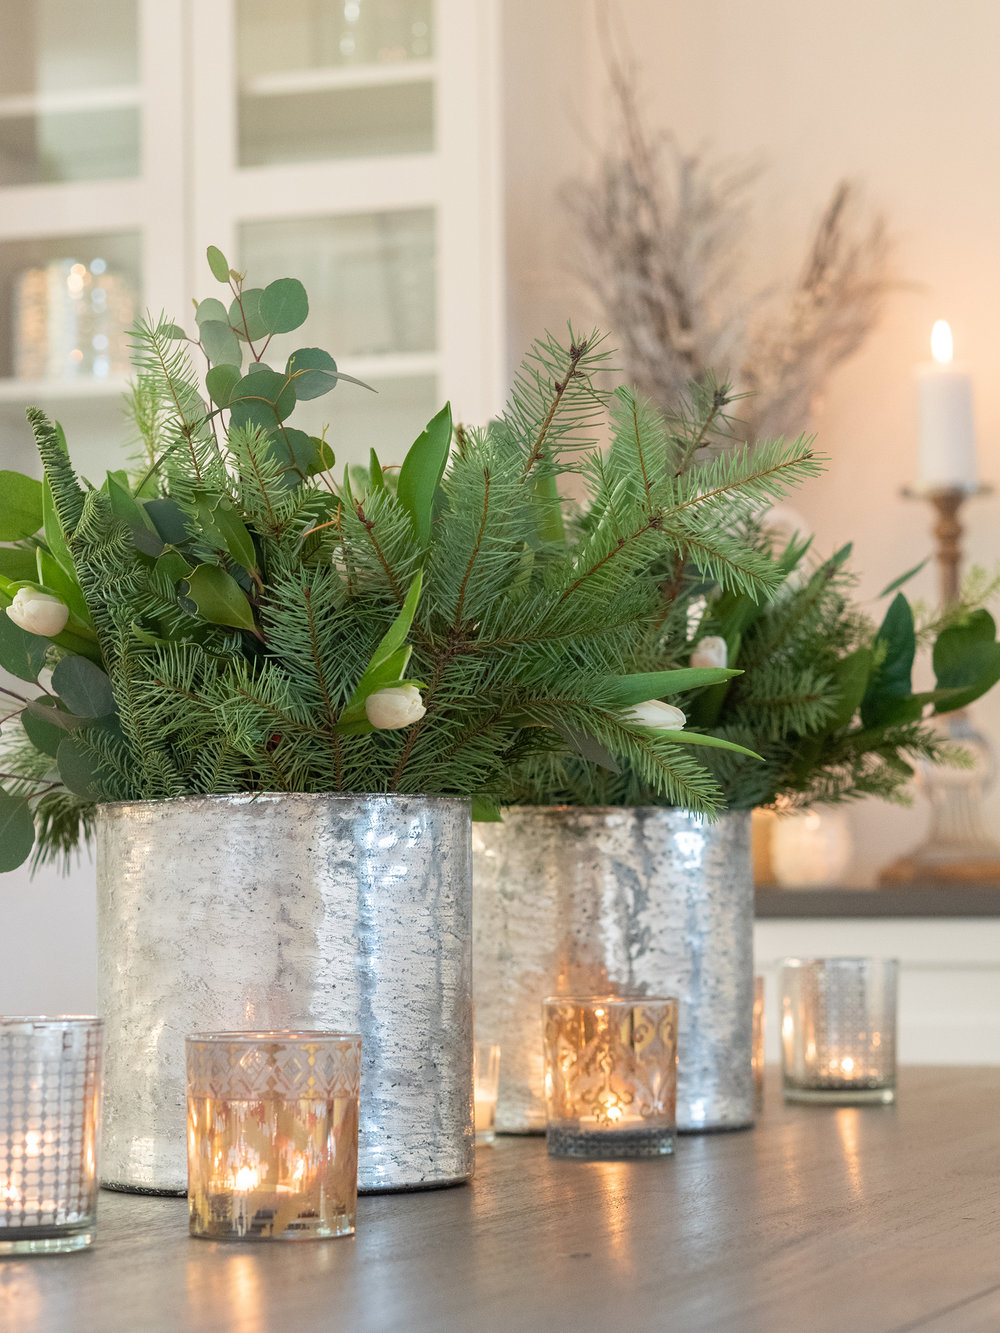 Fresh pine and eucalyptus add fragrance while white tulips break up the darkness.